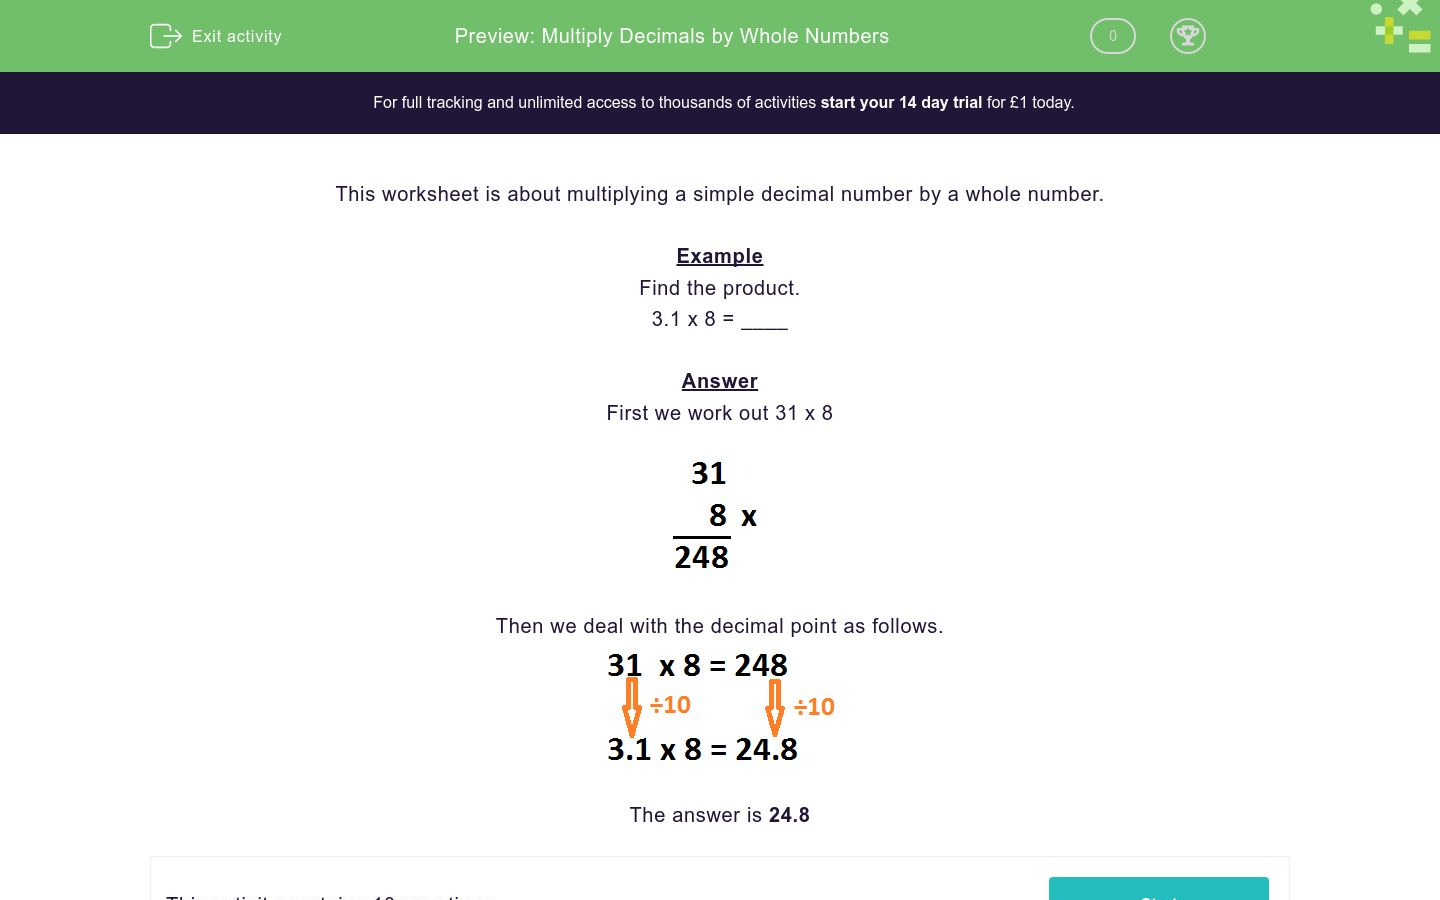 'Multiply Decimals by Whole Numbers' worksheet